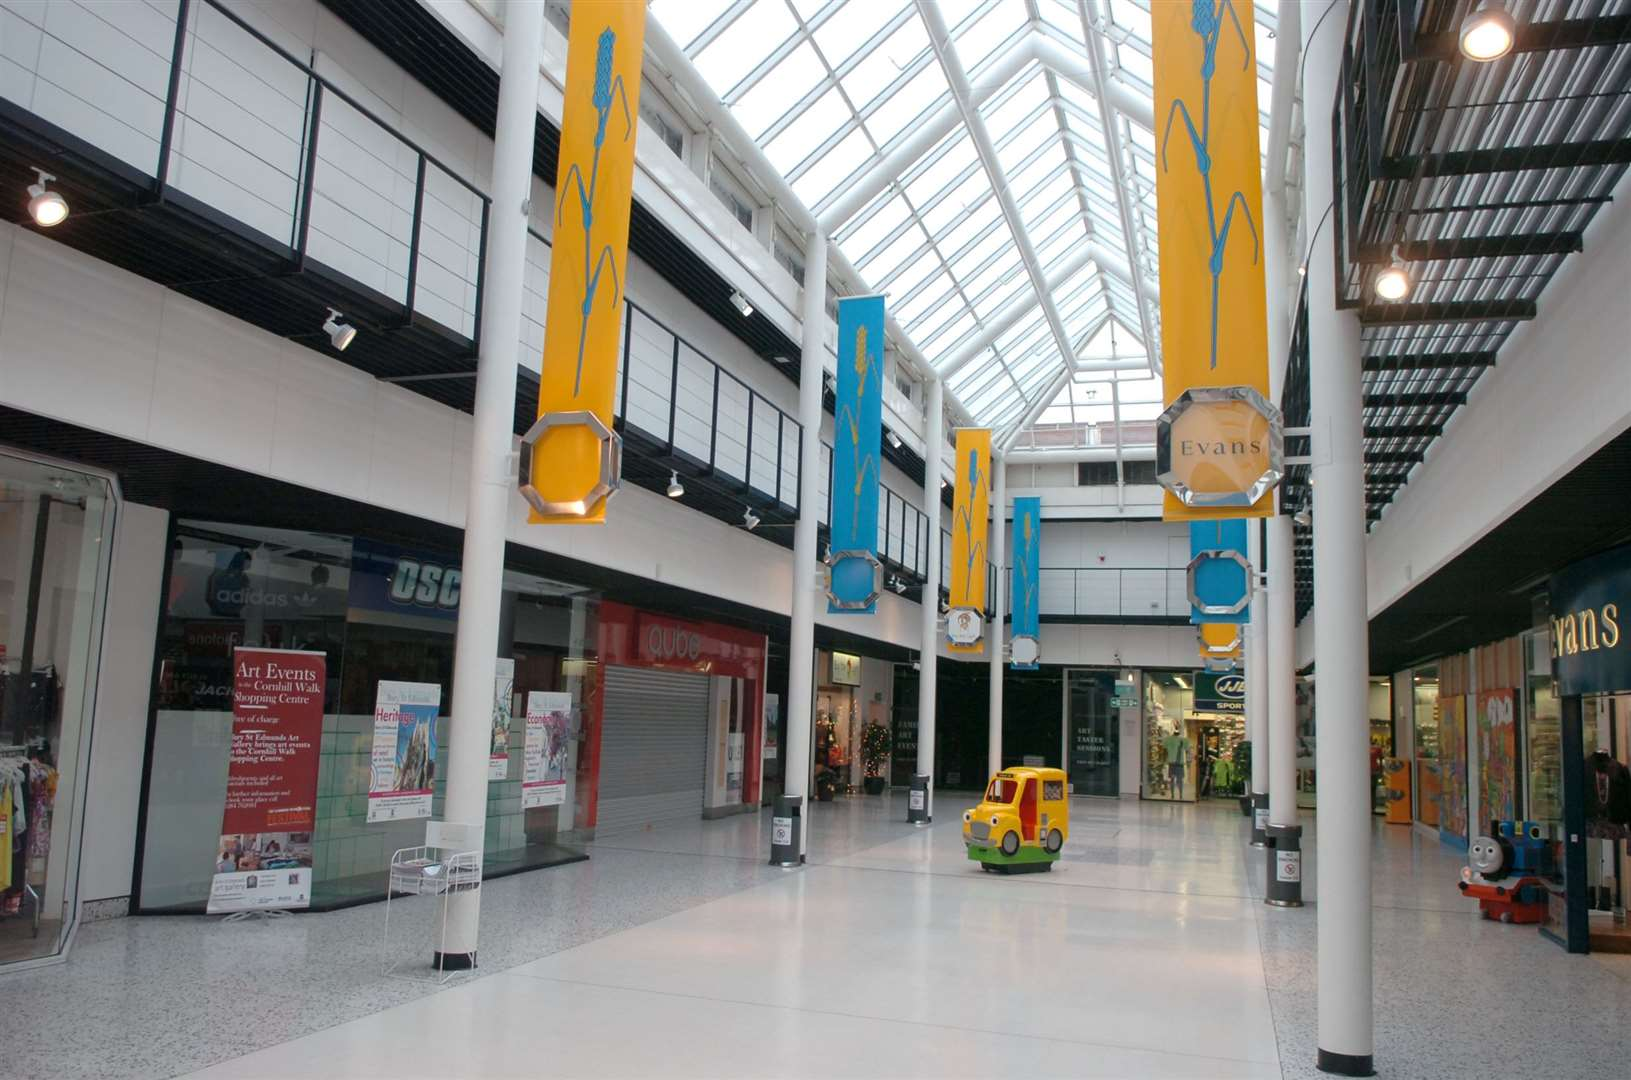 Pics from the Cornhill Walk shopping centre in Bury St Edmunds, which is now almost completly empty of shops.. (15842992)